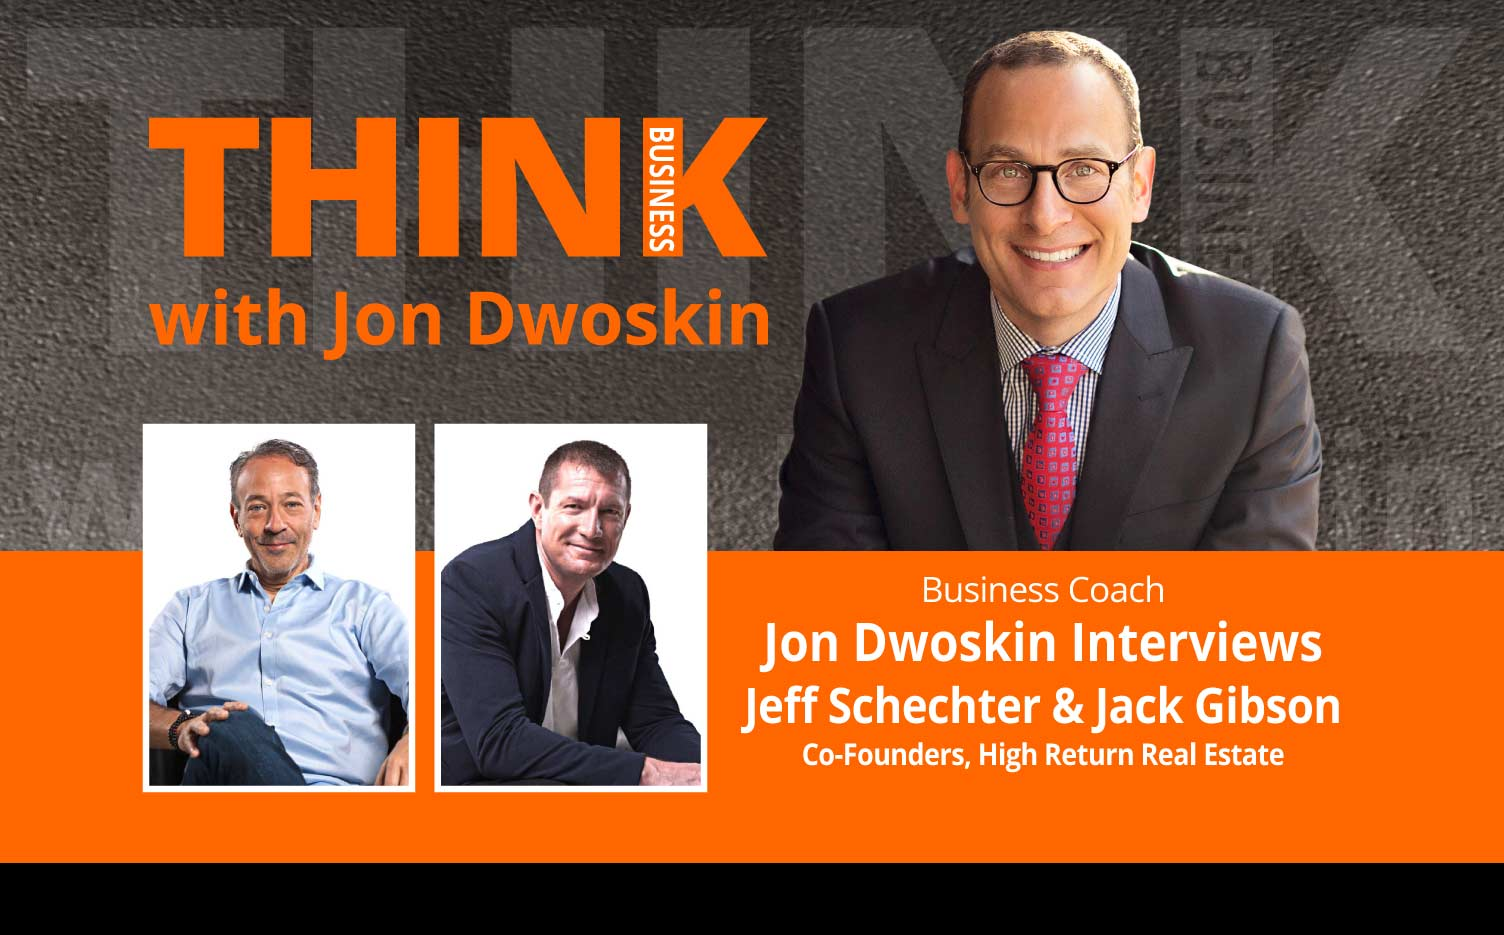 THINK Business Podcast: Jon Dwoskin Interviews Jeff Schechter and Jack Gibson, Co-Founders, High Return Real Estate